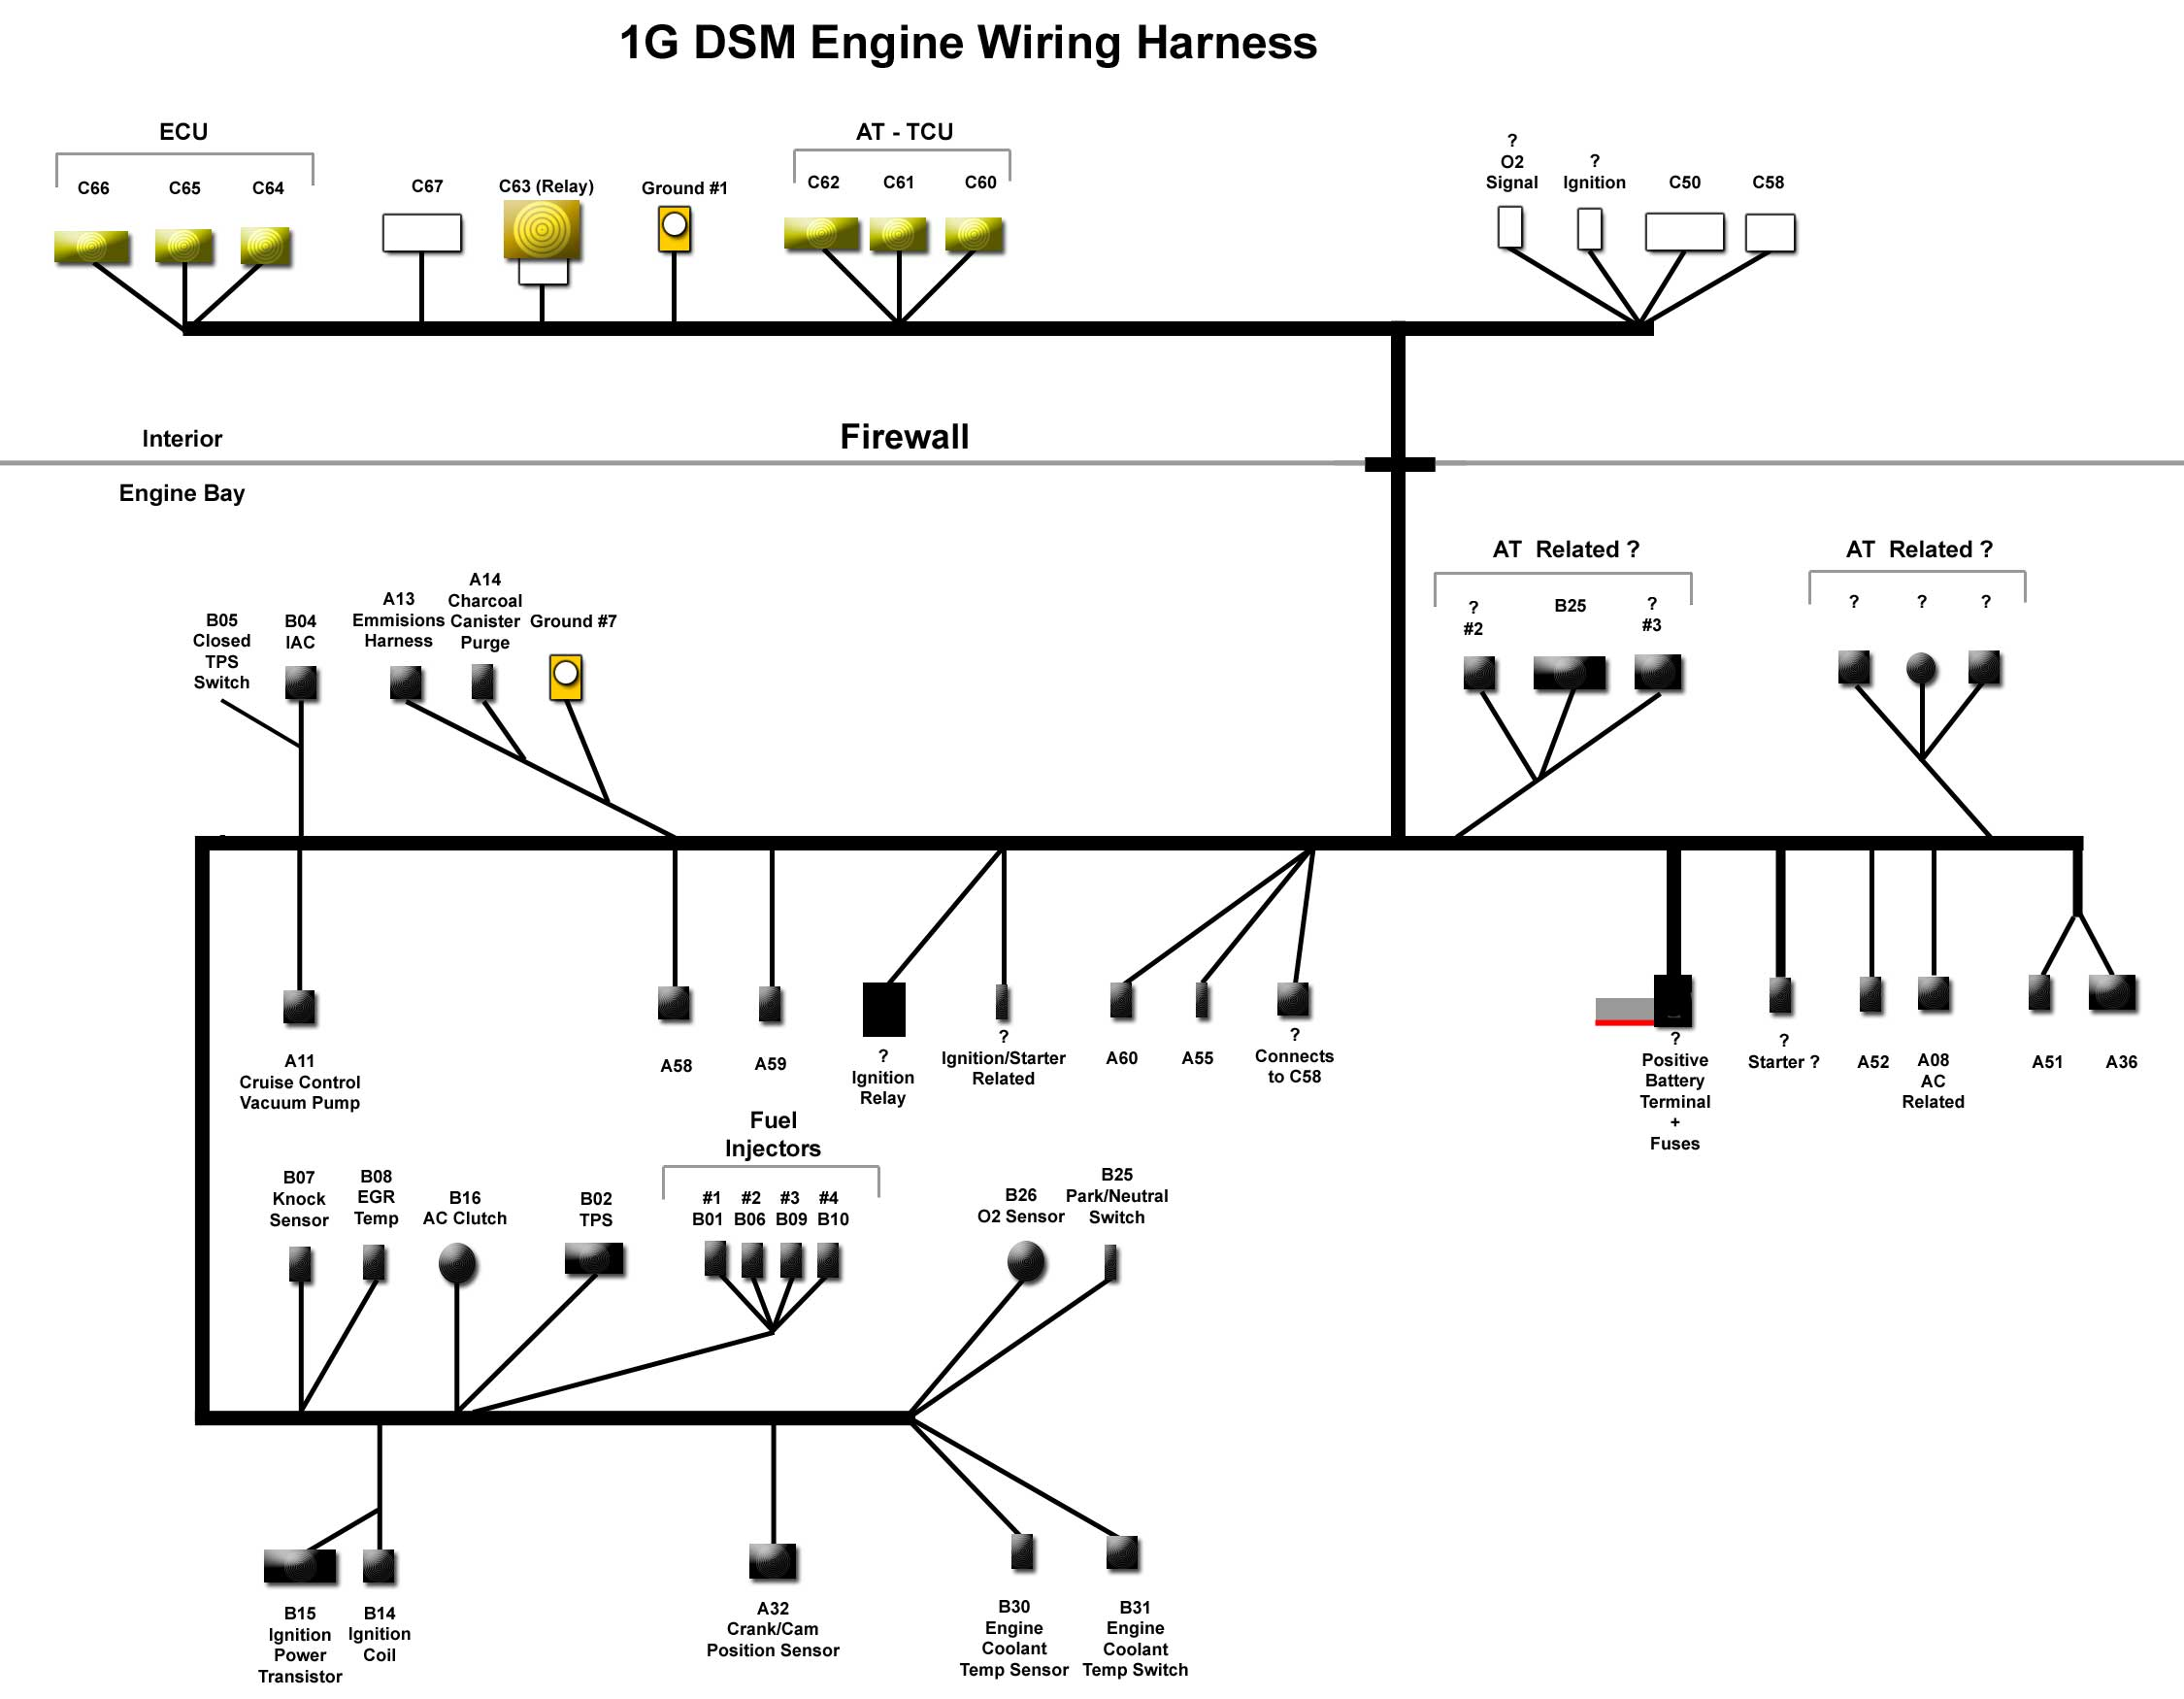 wire harness pinout simple wiring diagram wire harness diagram simple wiring diagram kenwood wire harness pinout wire harness diagram wiring diagram site